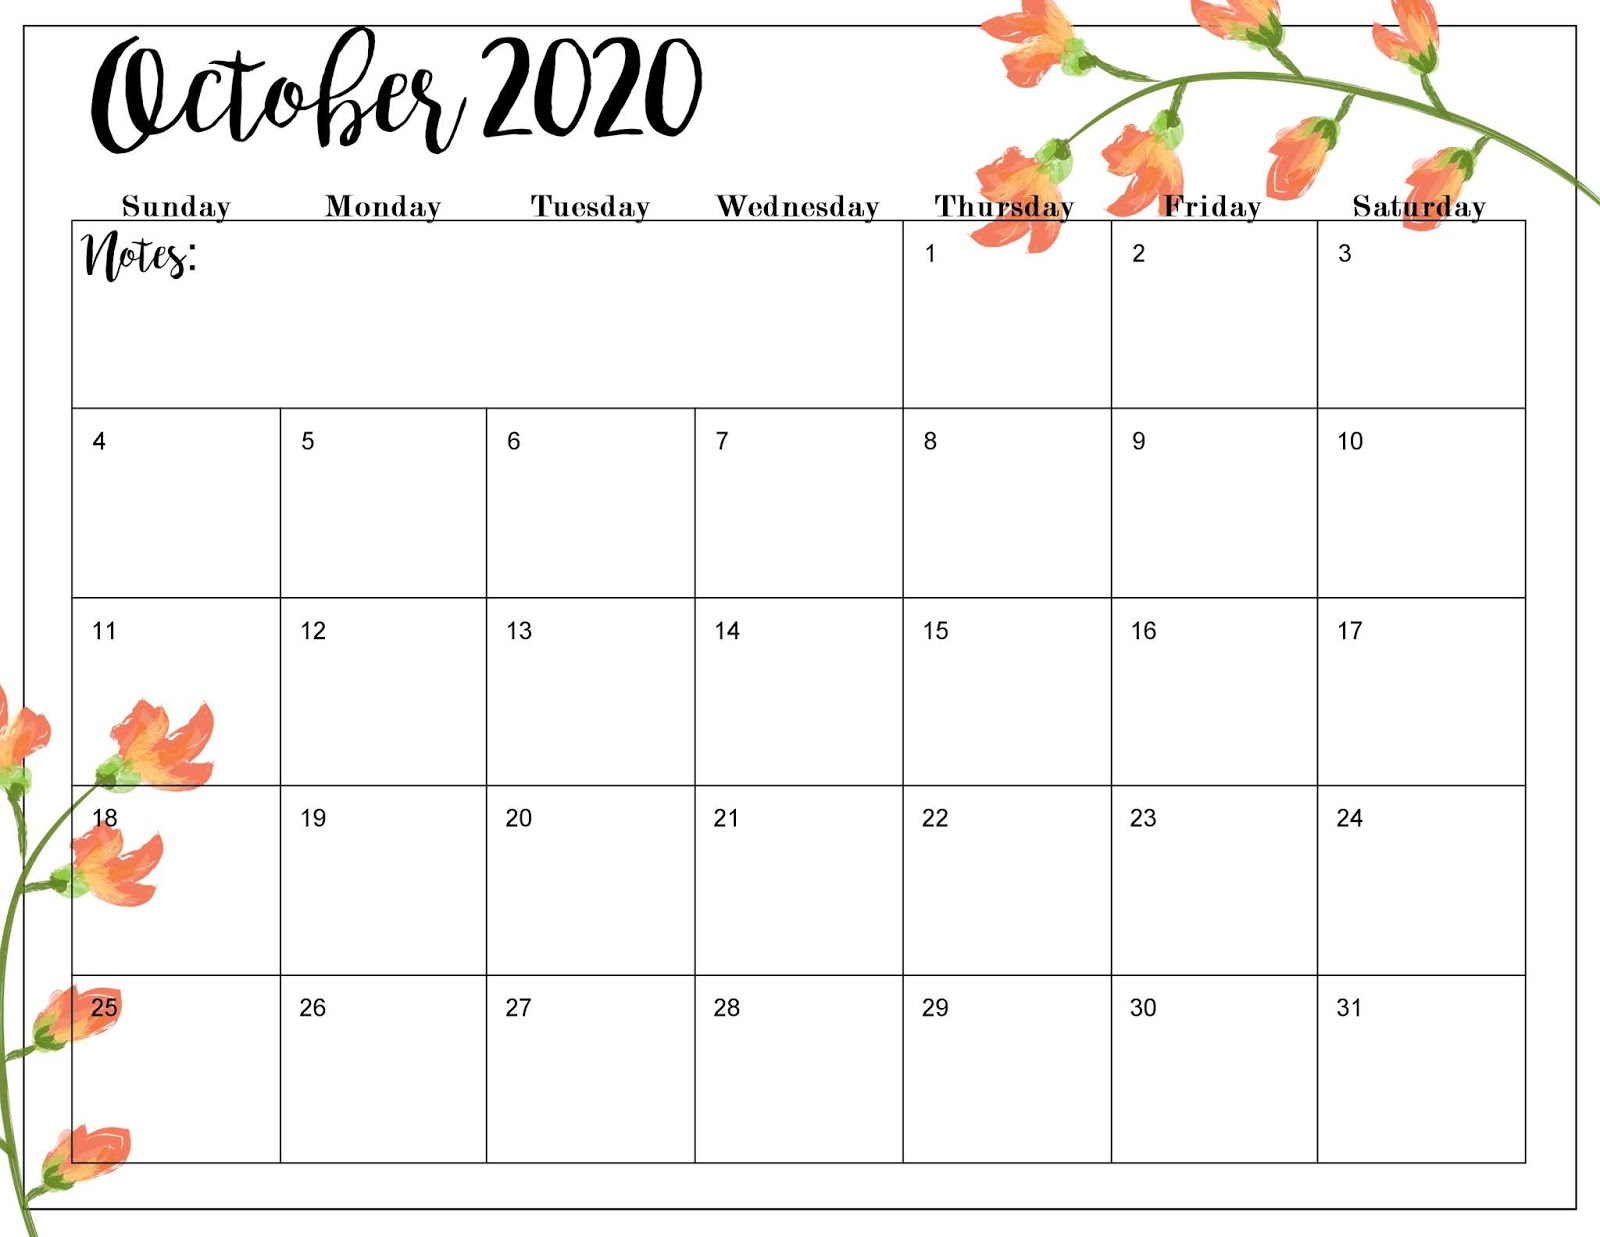 This is an image of Invaluable Free Printable Calendars for 2020